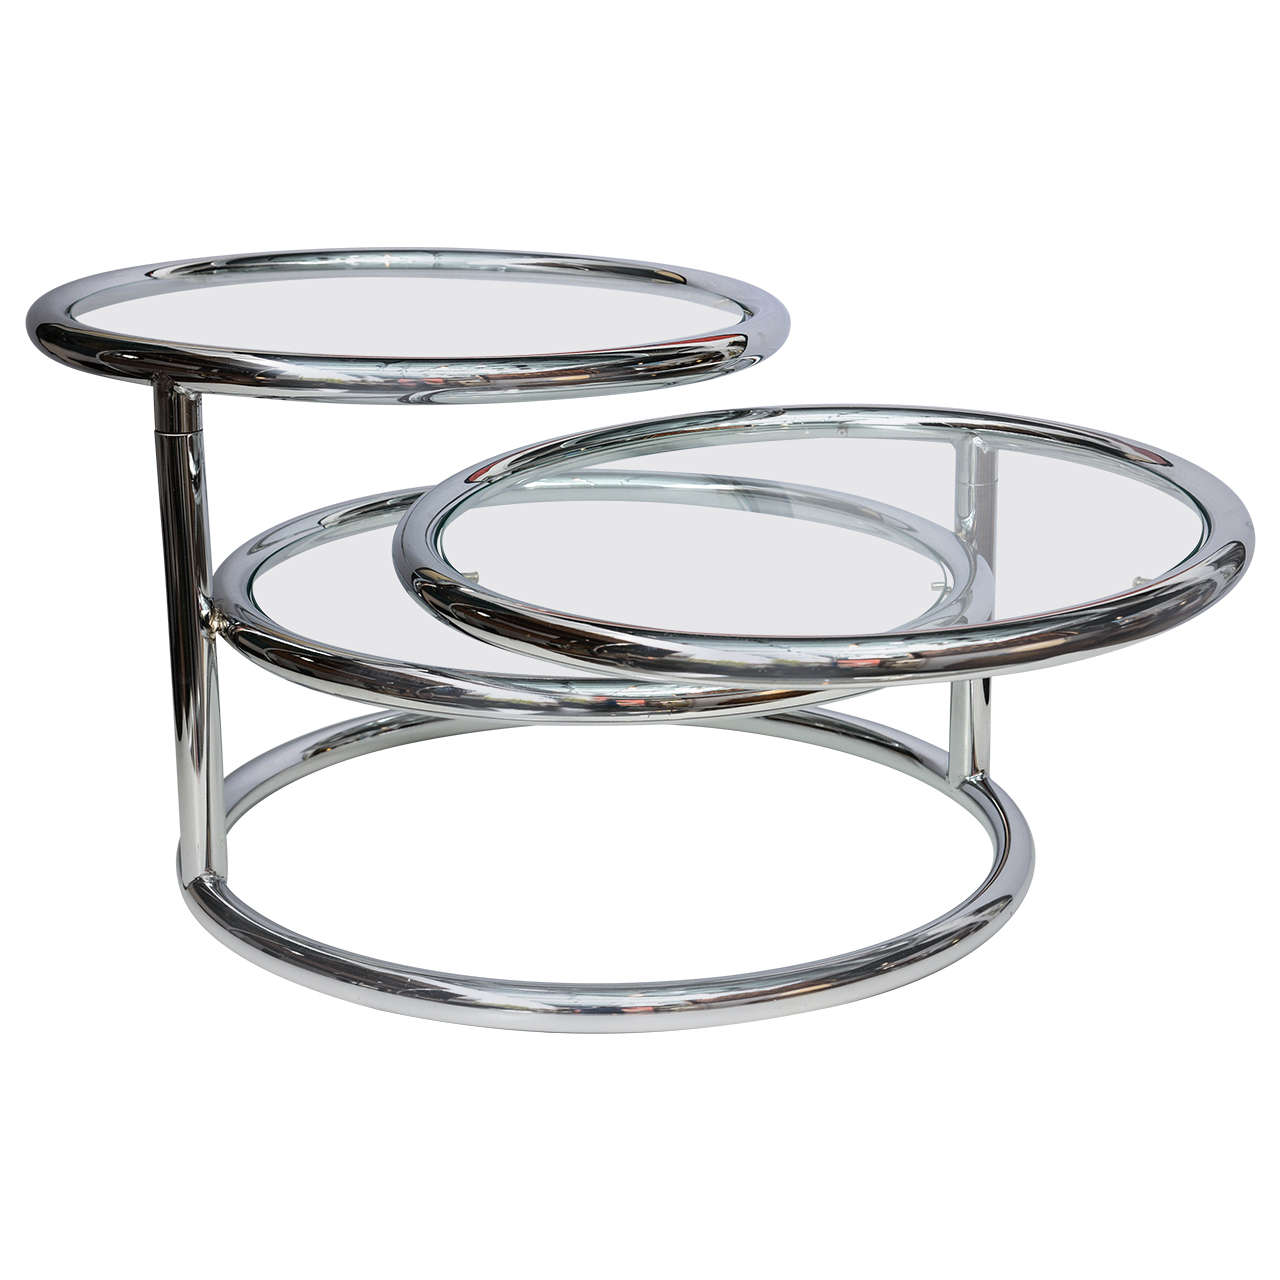 Milo Baughman Style Swivel Tiered Circles Coffee Table For